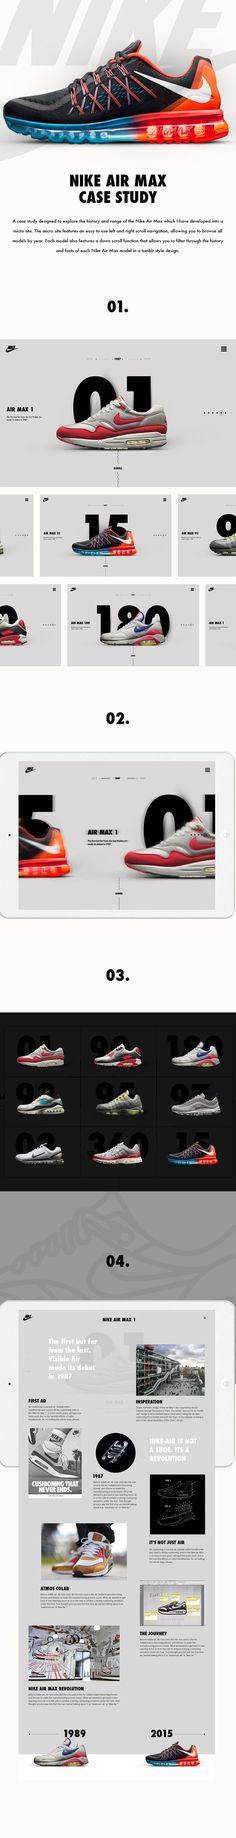 Nike Air Max Case Study by Shaun Gardner